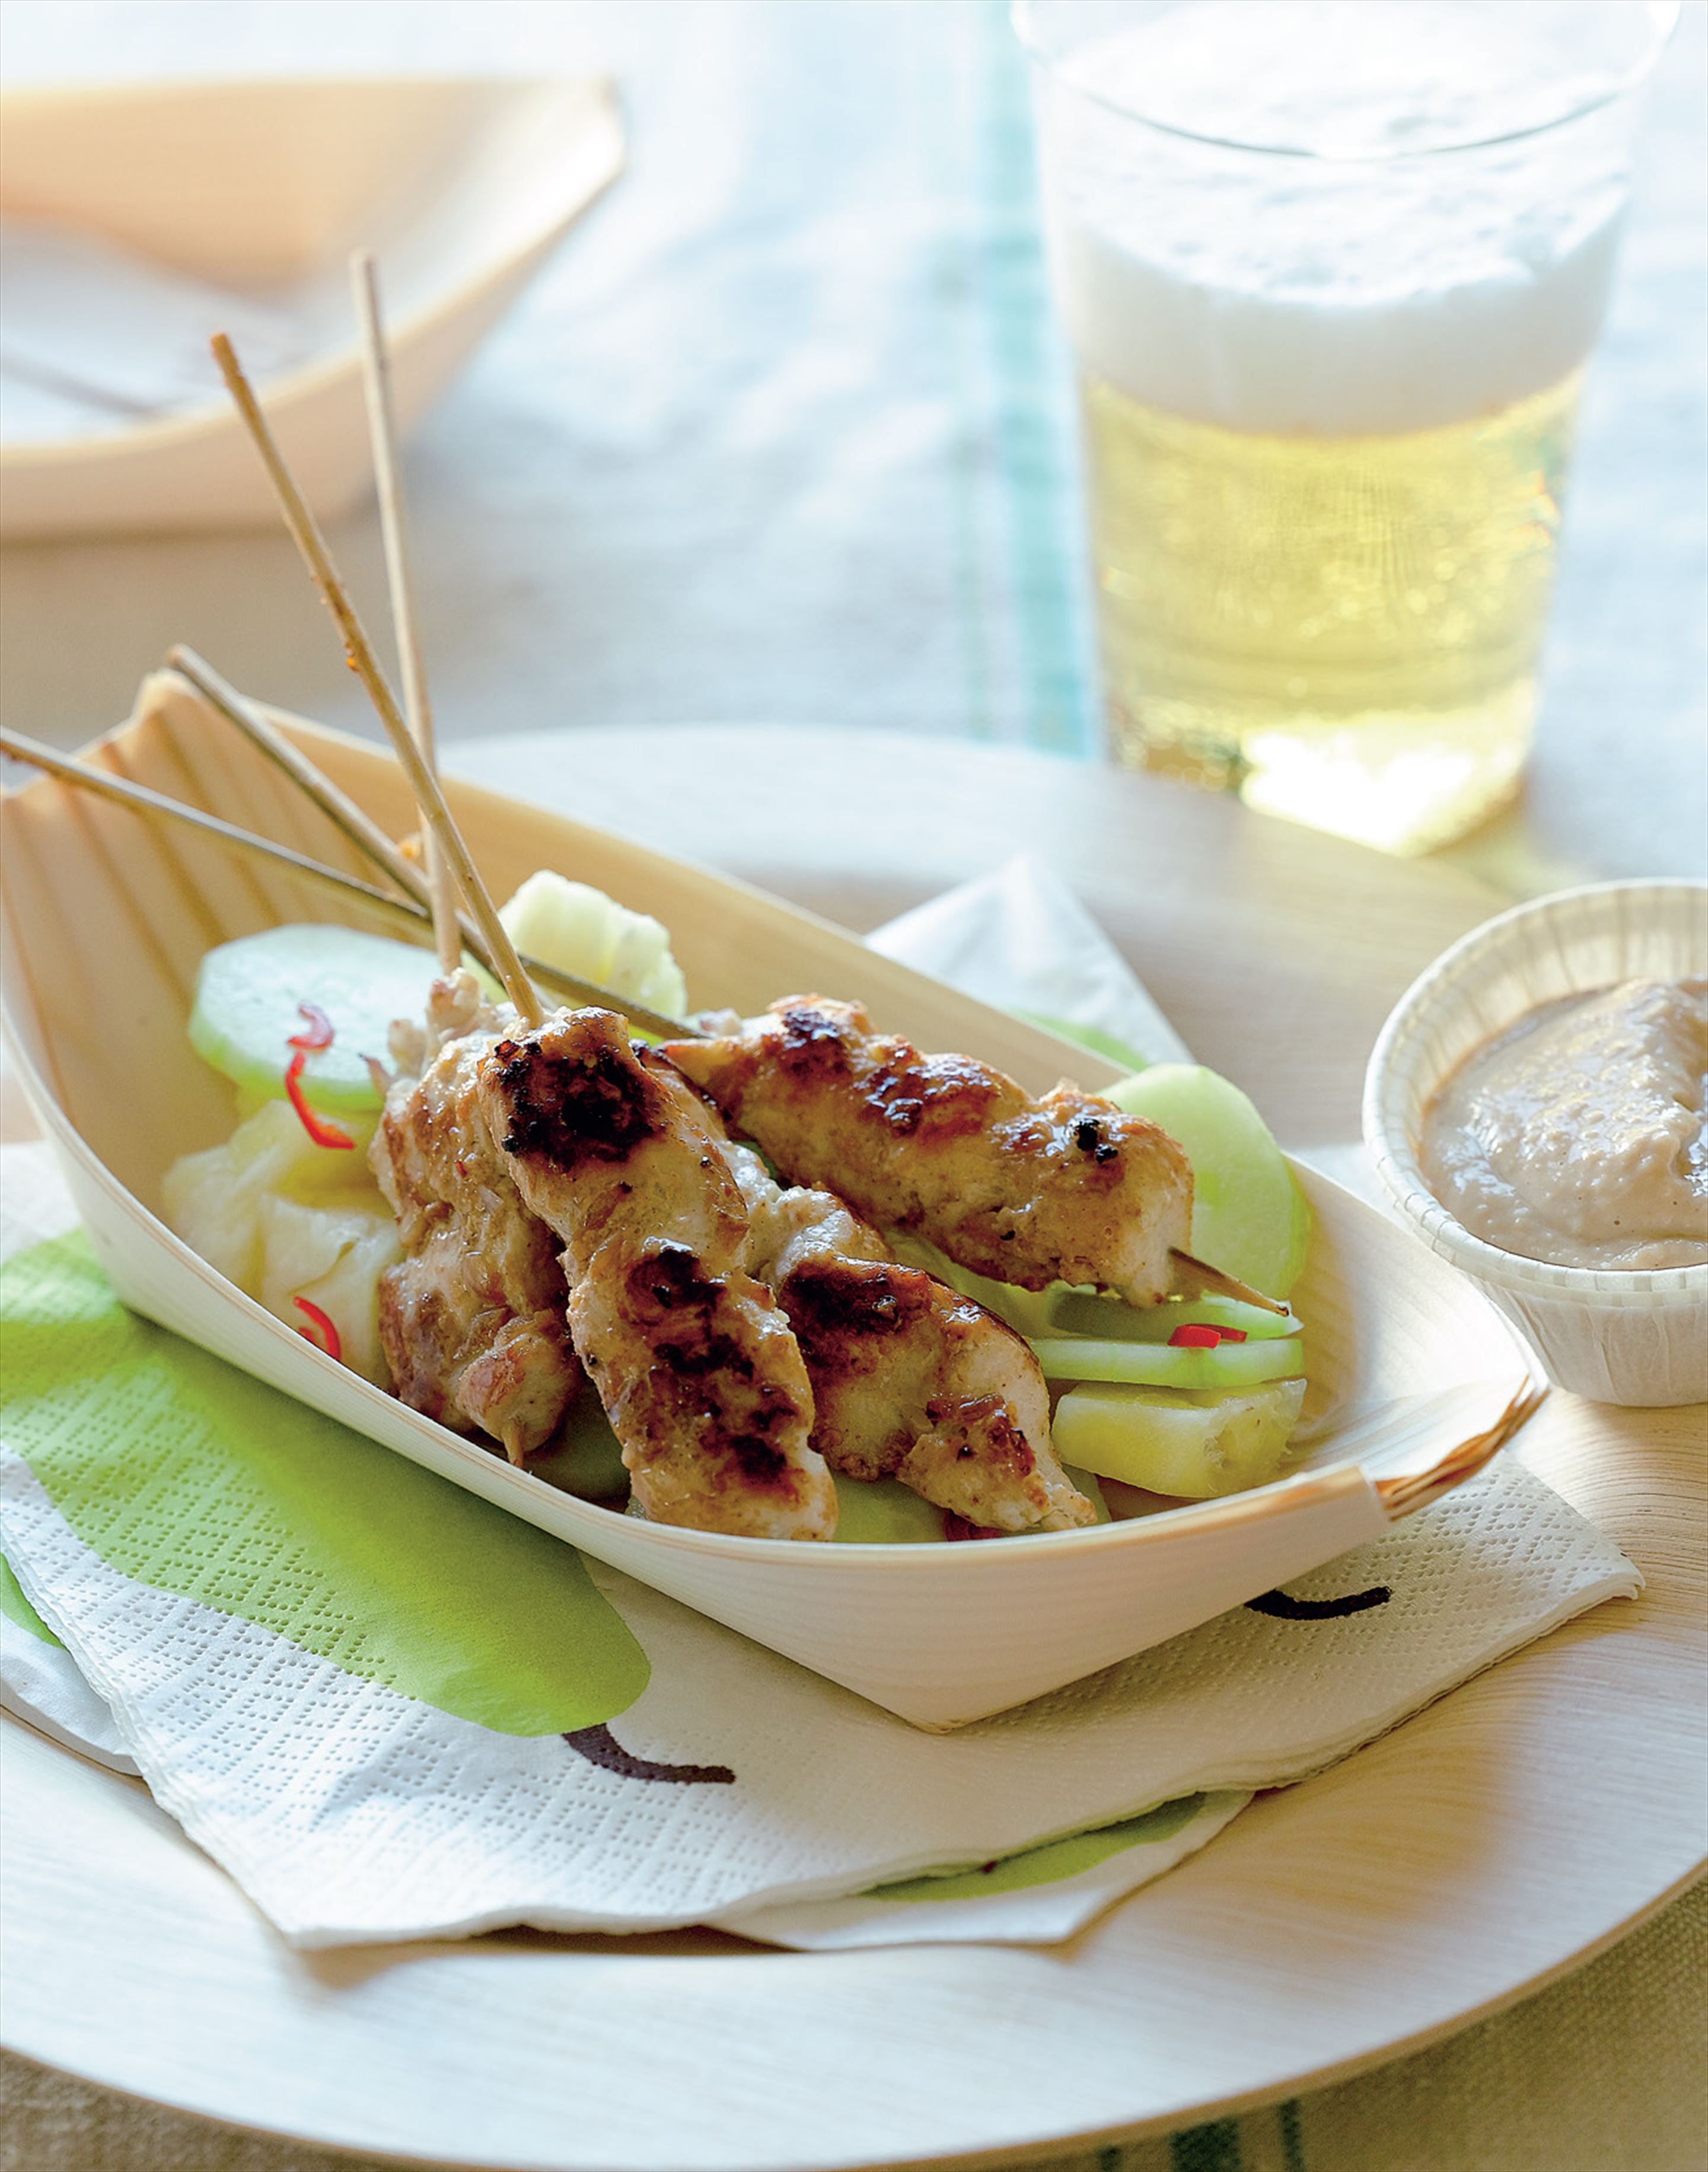 Satay chicken with peanut sauce, pineapple, and cucumber salad